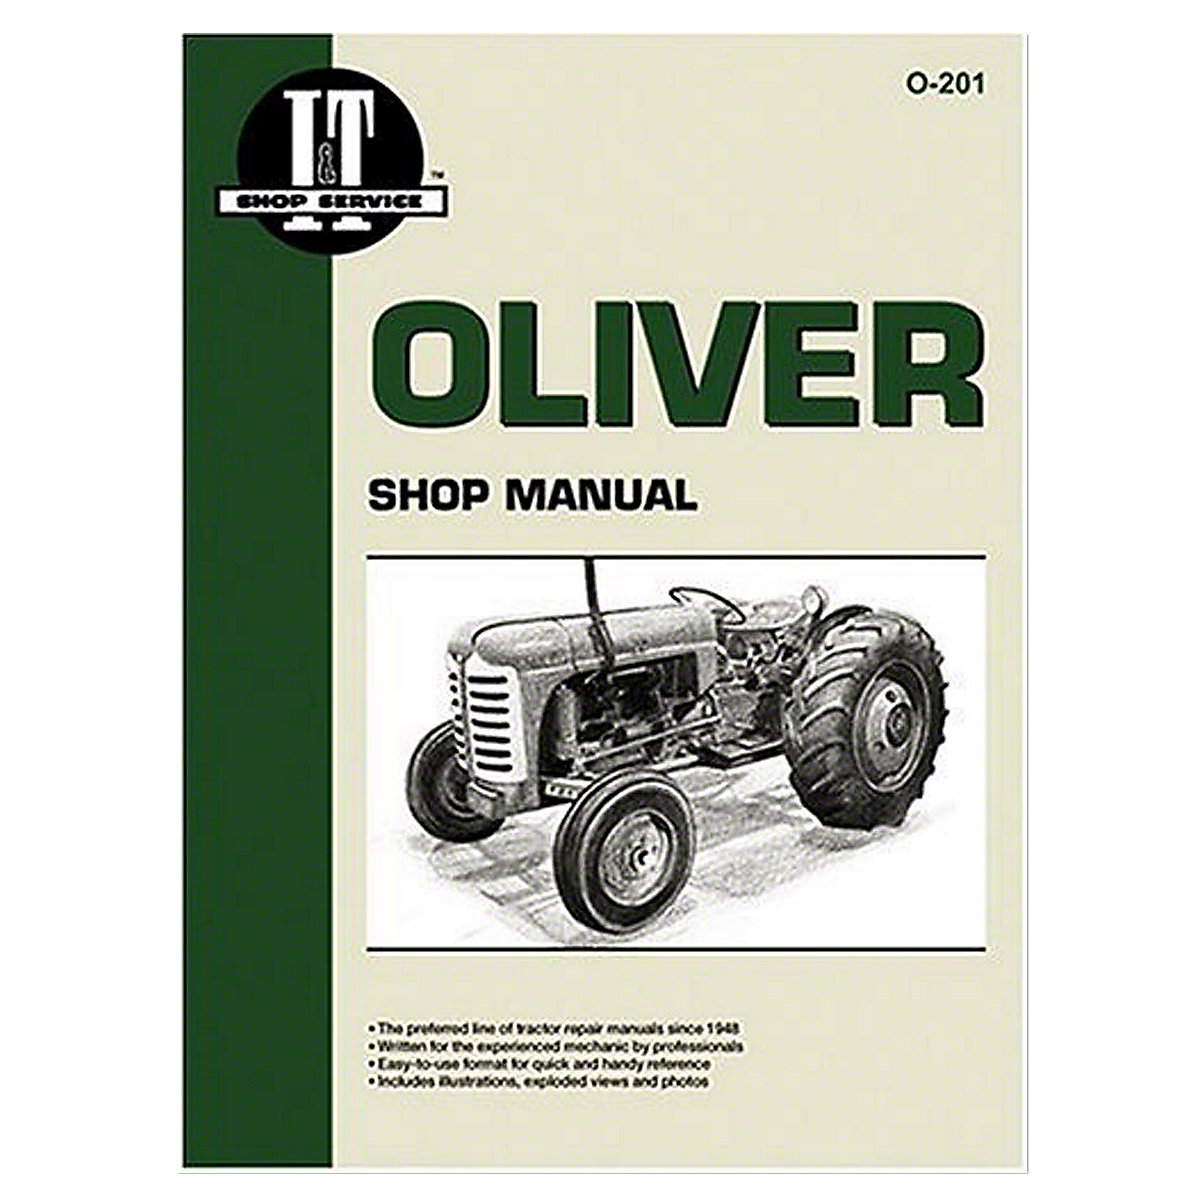 o201 i t shop service manual rh steinertractor com Oliver 880 Seat For a 880 Oliver Tractor Decals